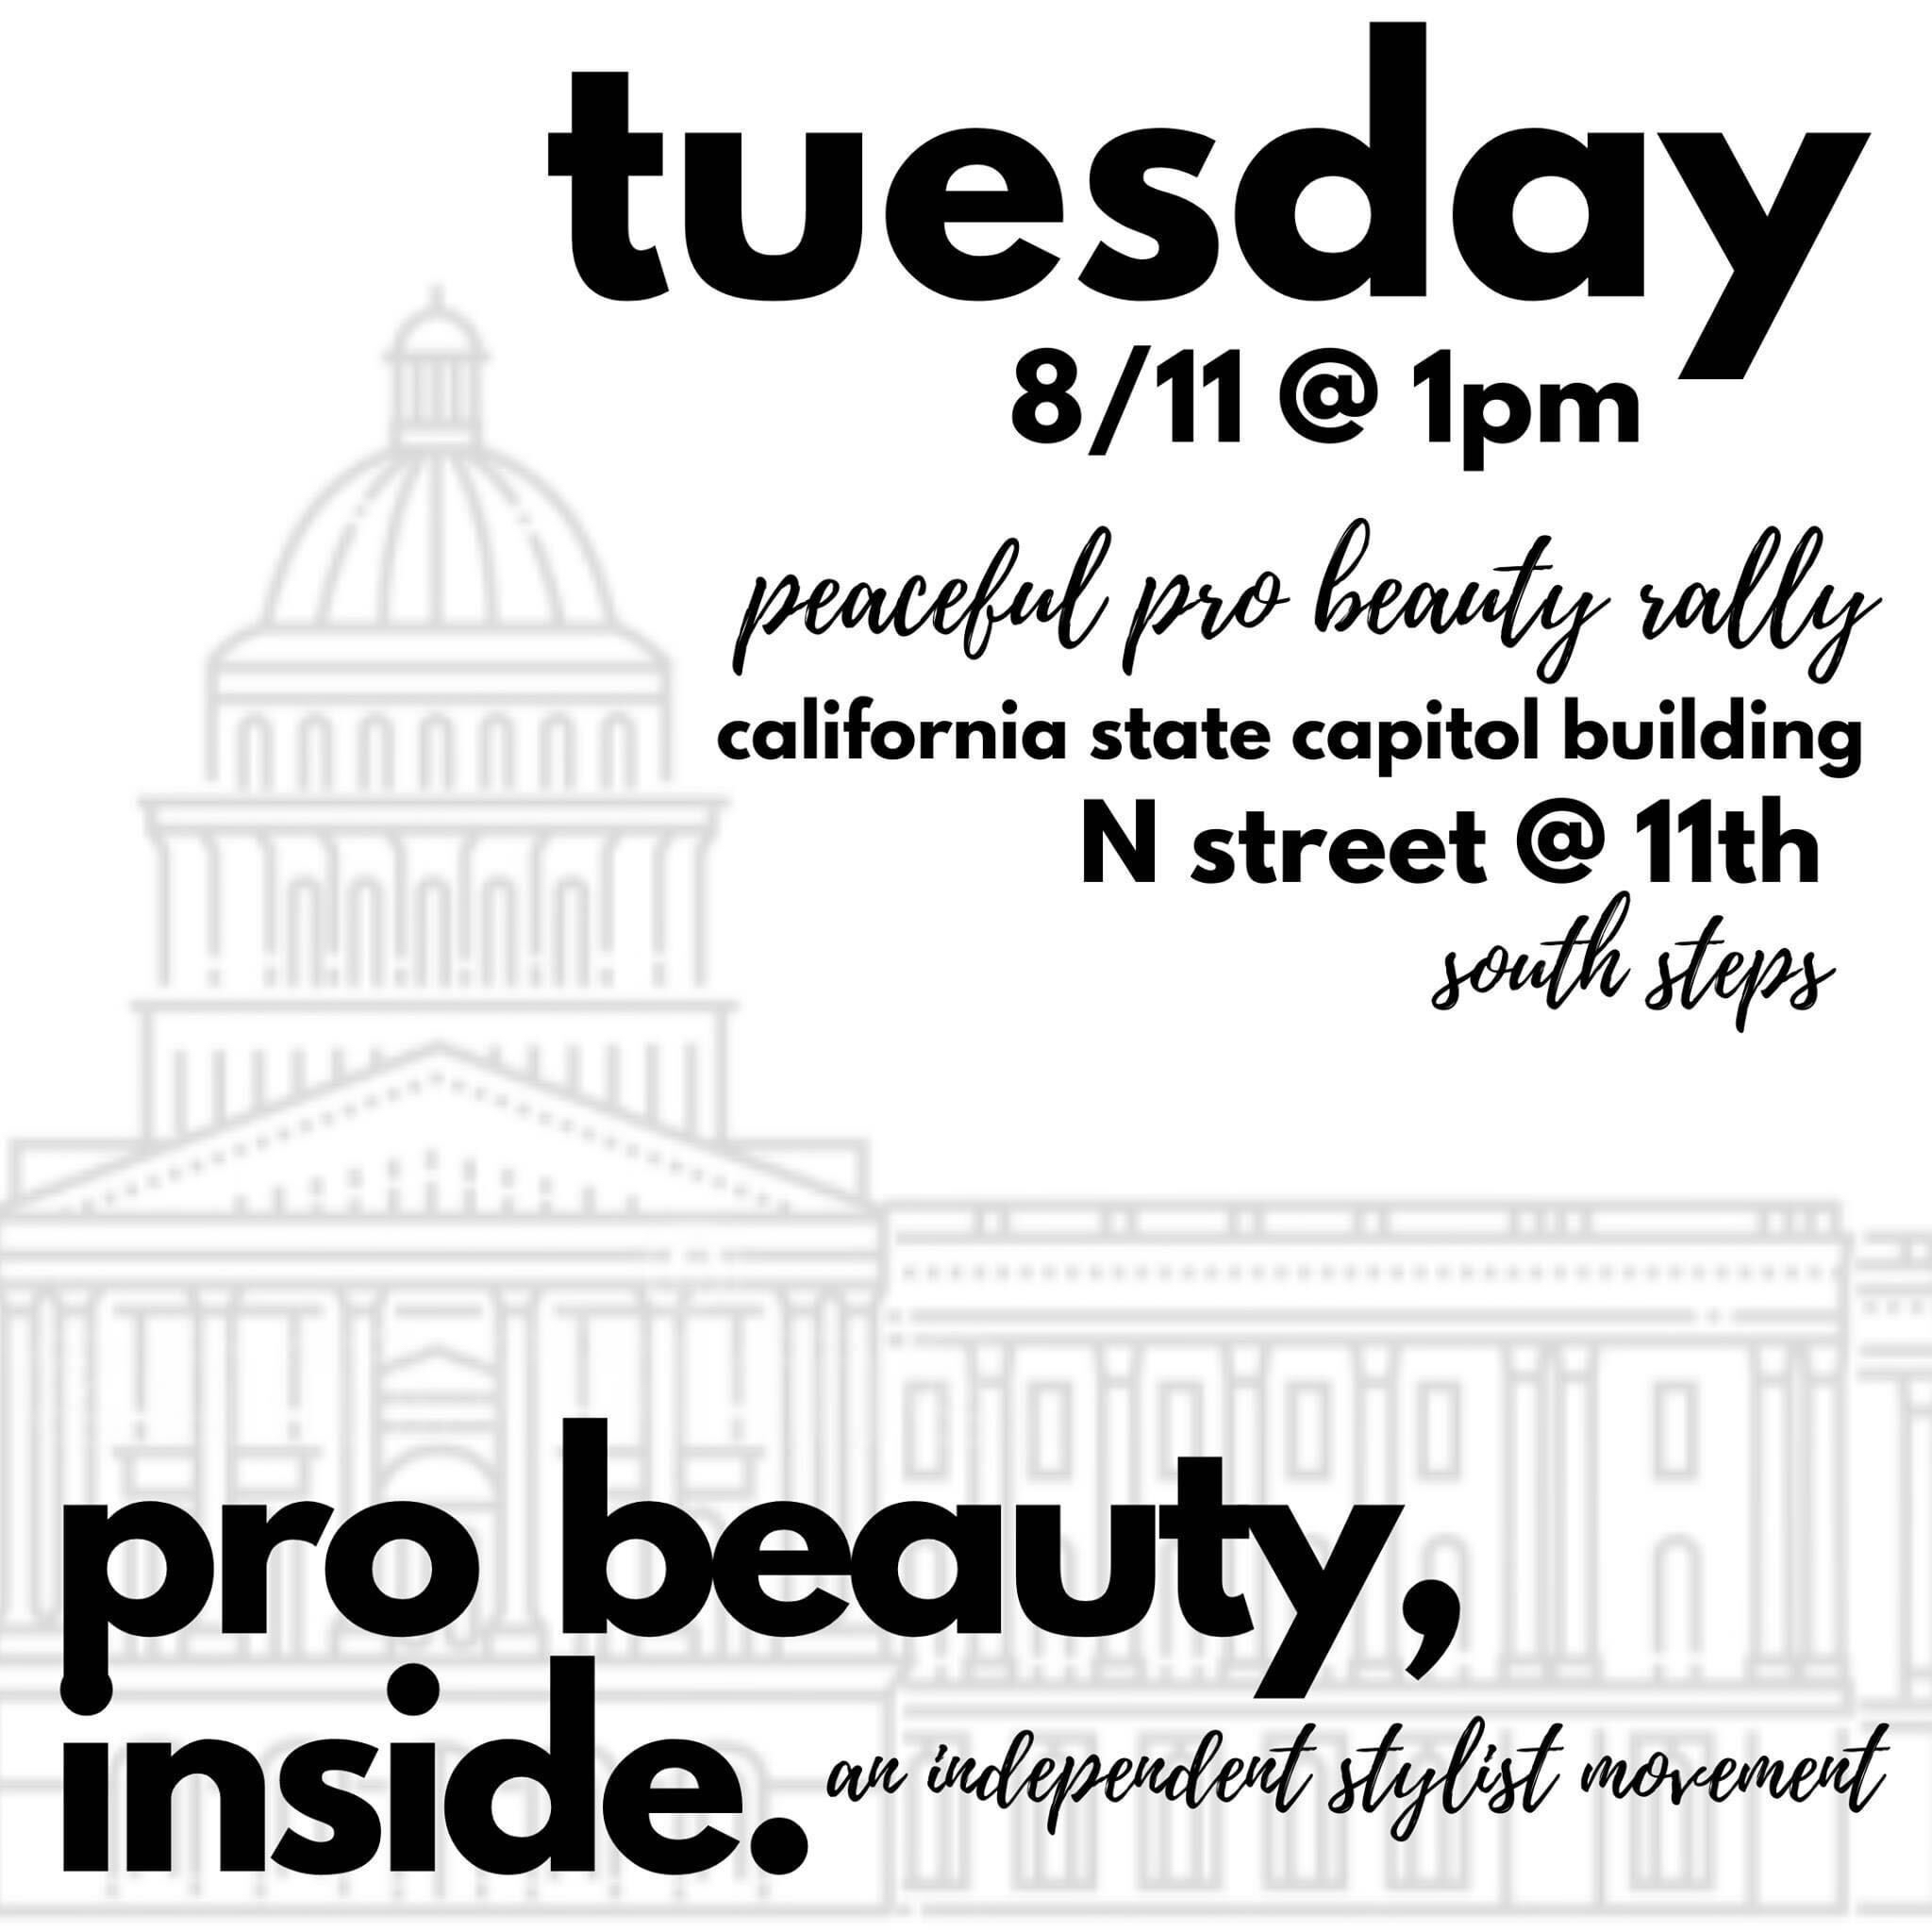 California Pro Beauty Rally Aug 11th